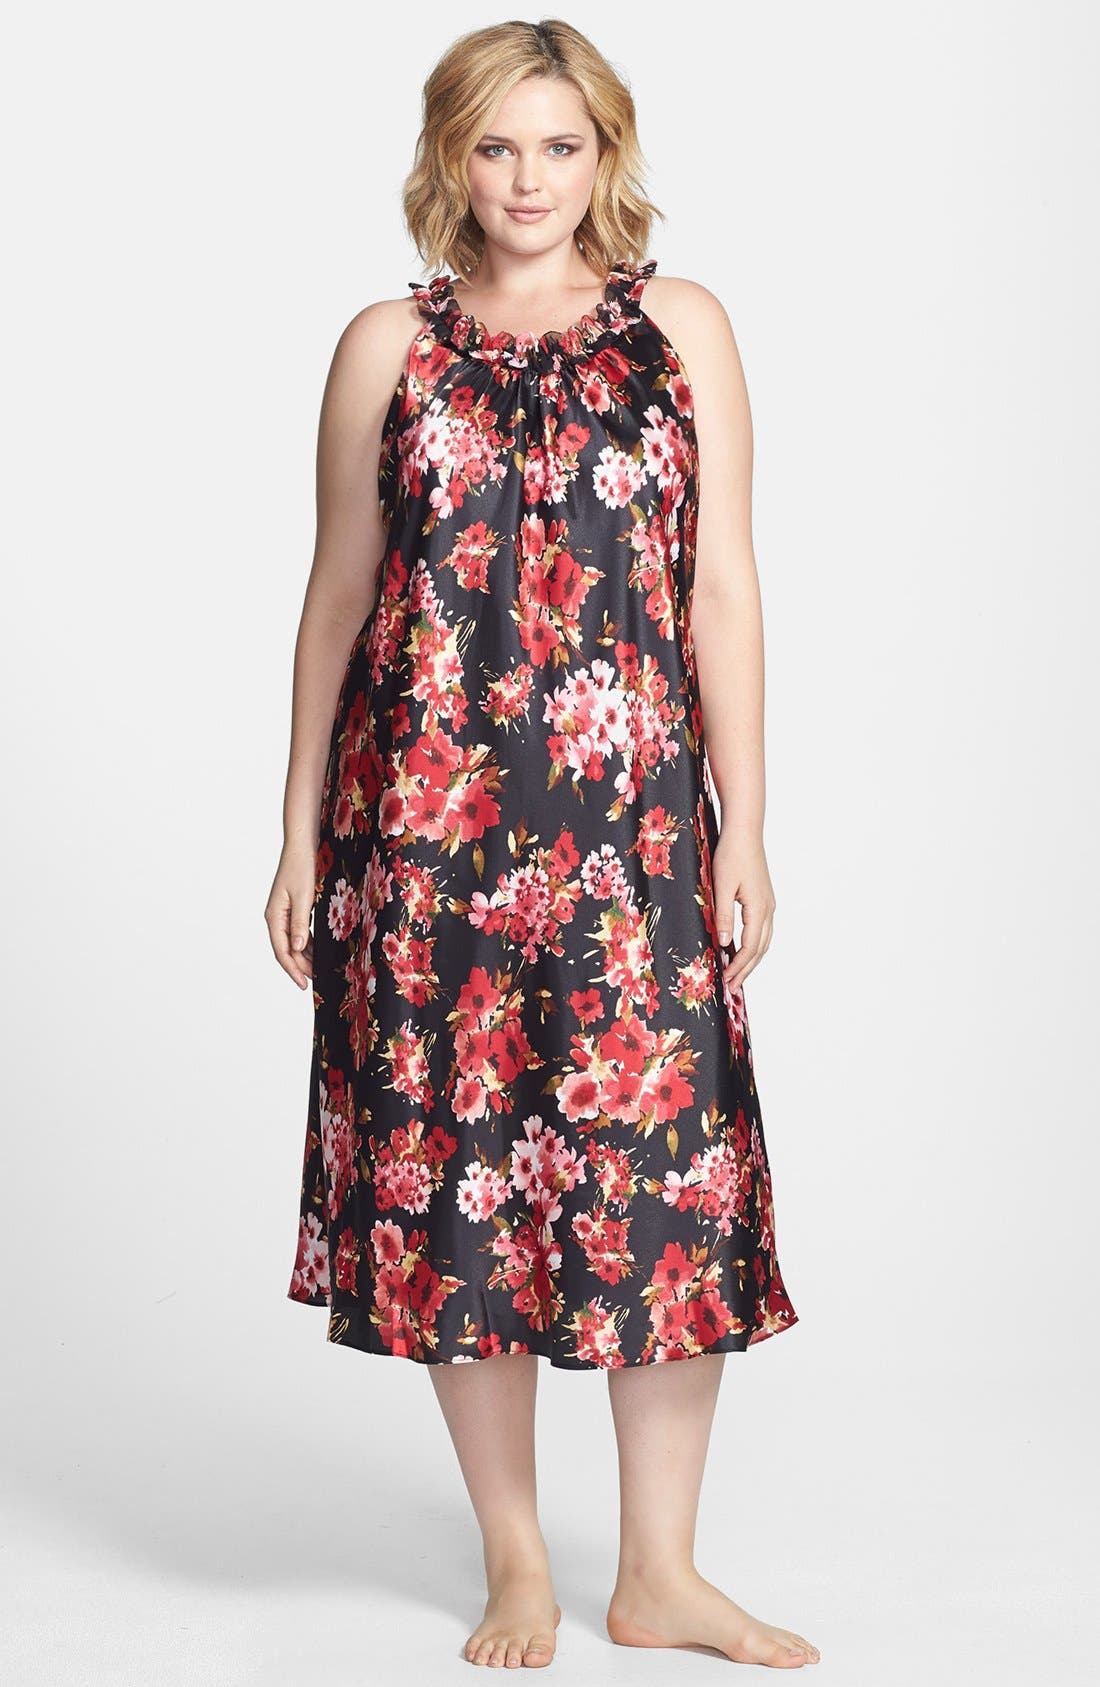 Main Image - Oscar de la Renta Sleepwear 'Holiday Bouquet' Long Nightgown (Plus Size)